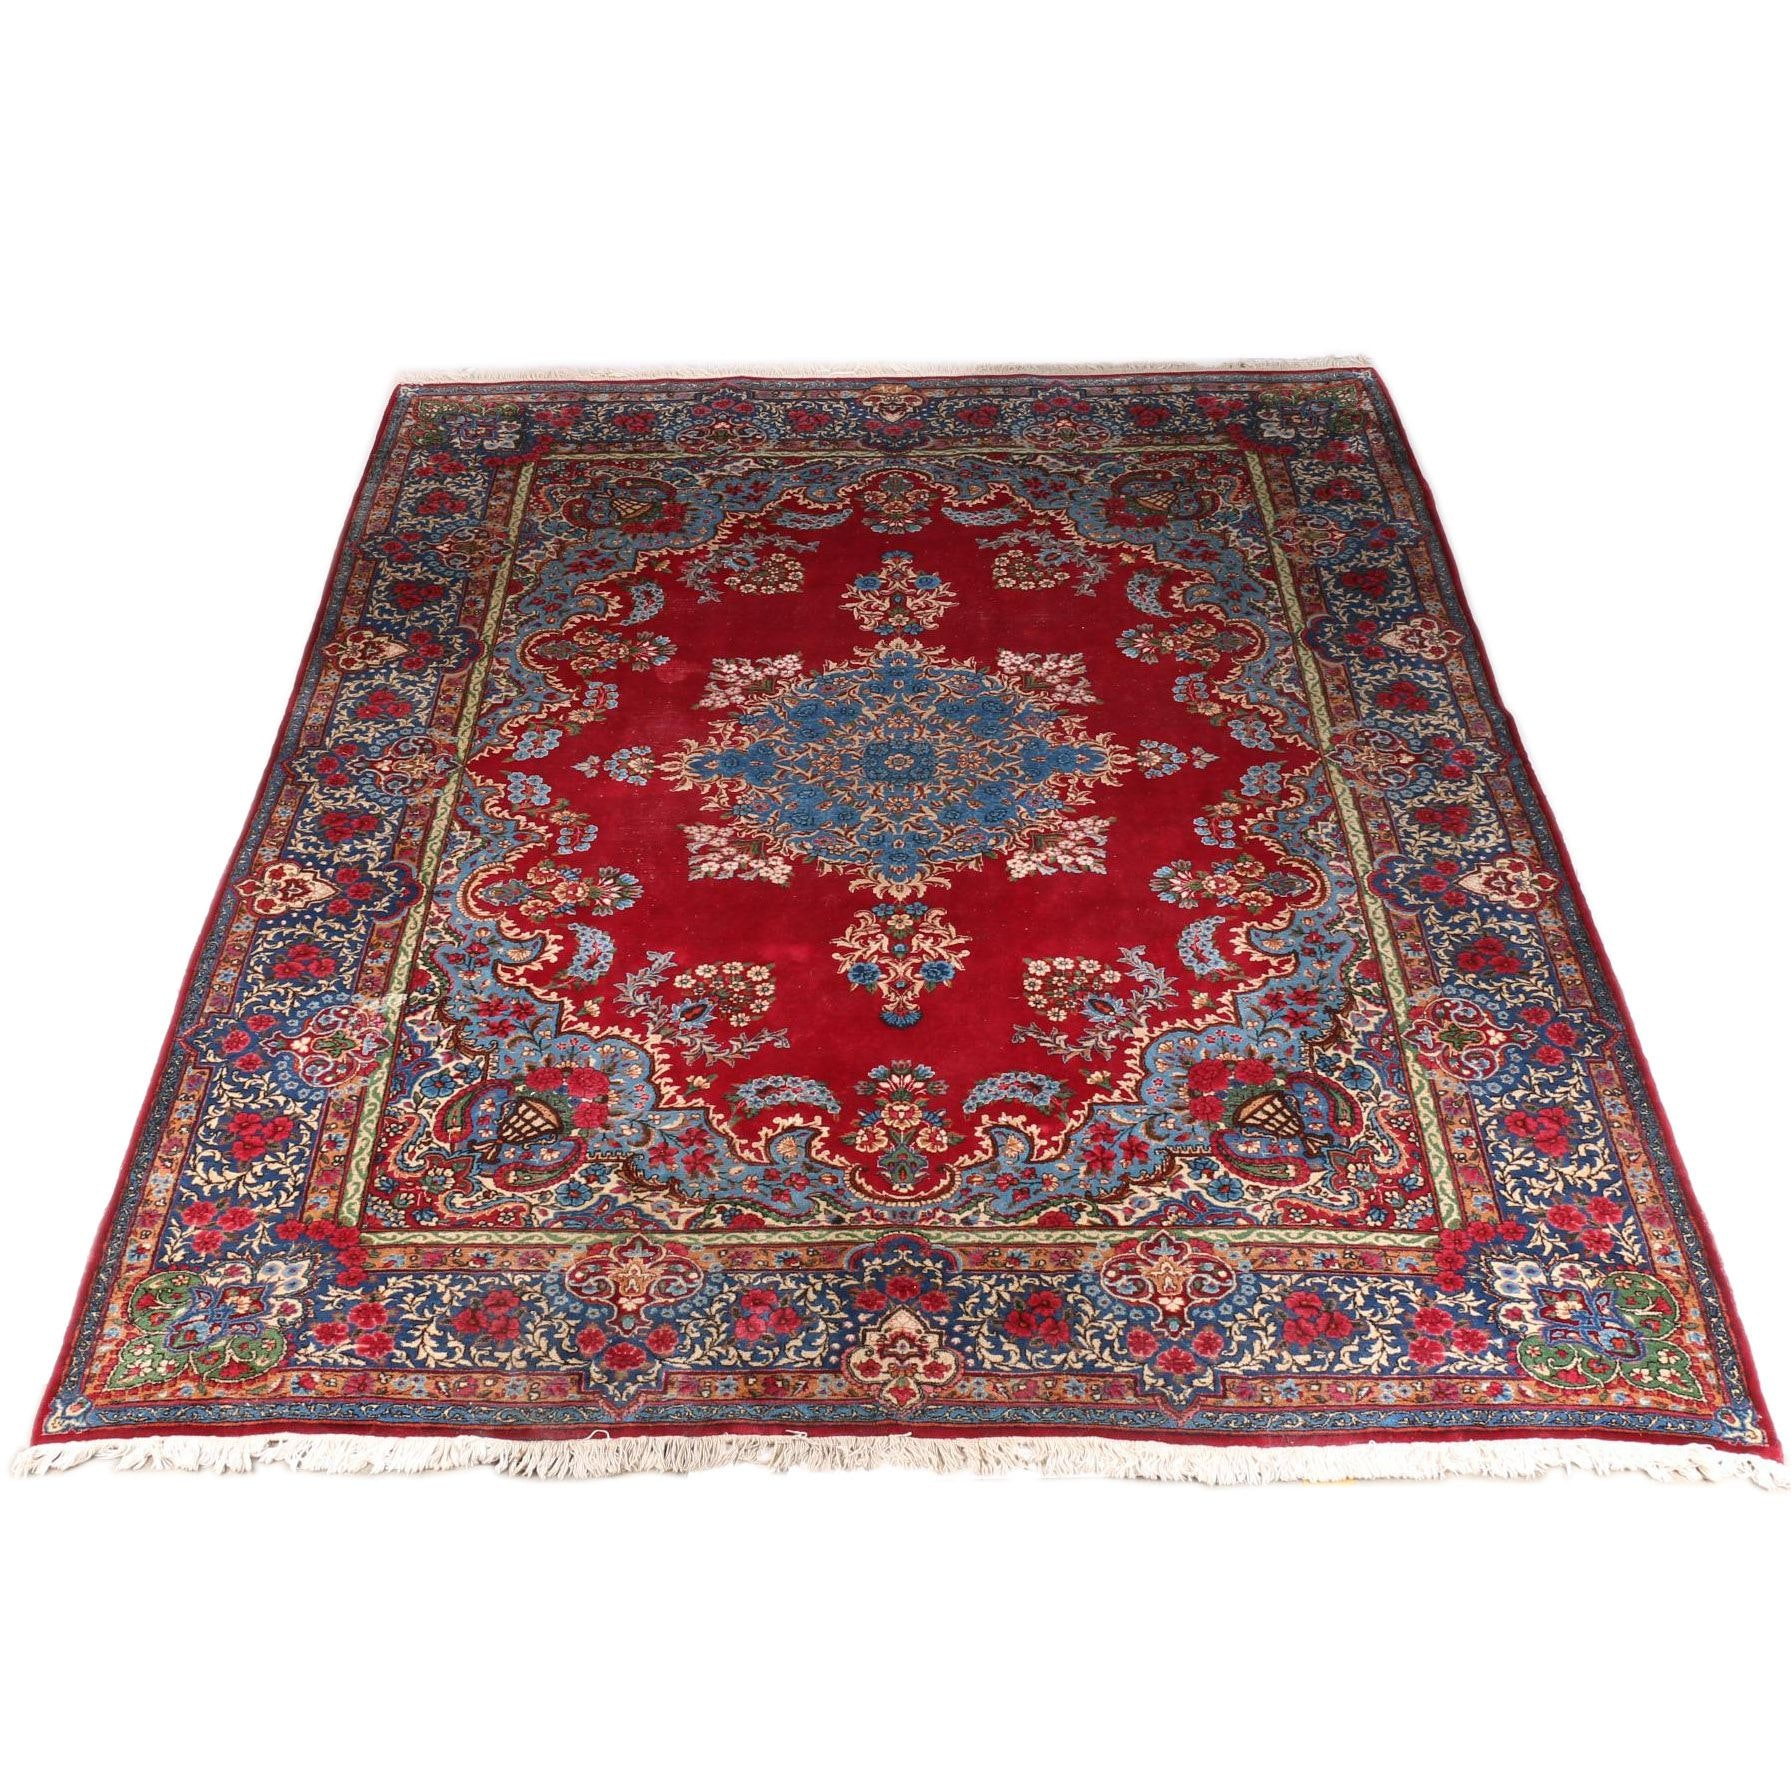 Hand-Knotted Persian Kerman Area Rug